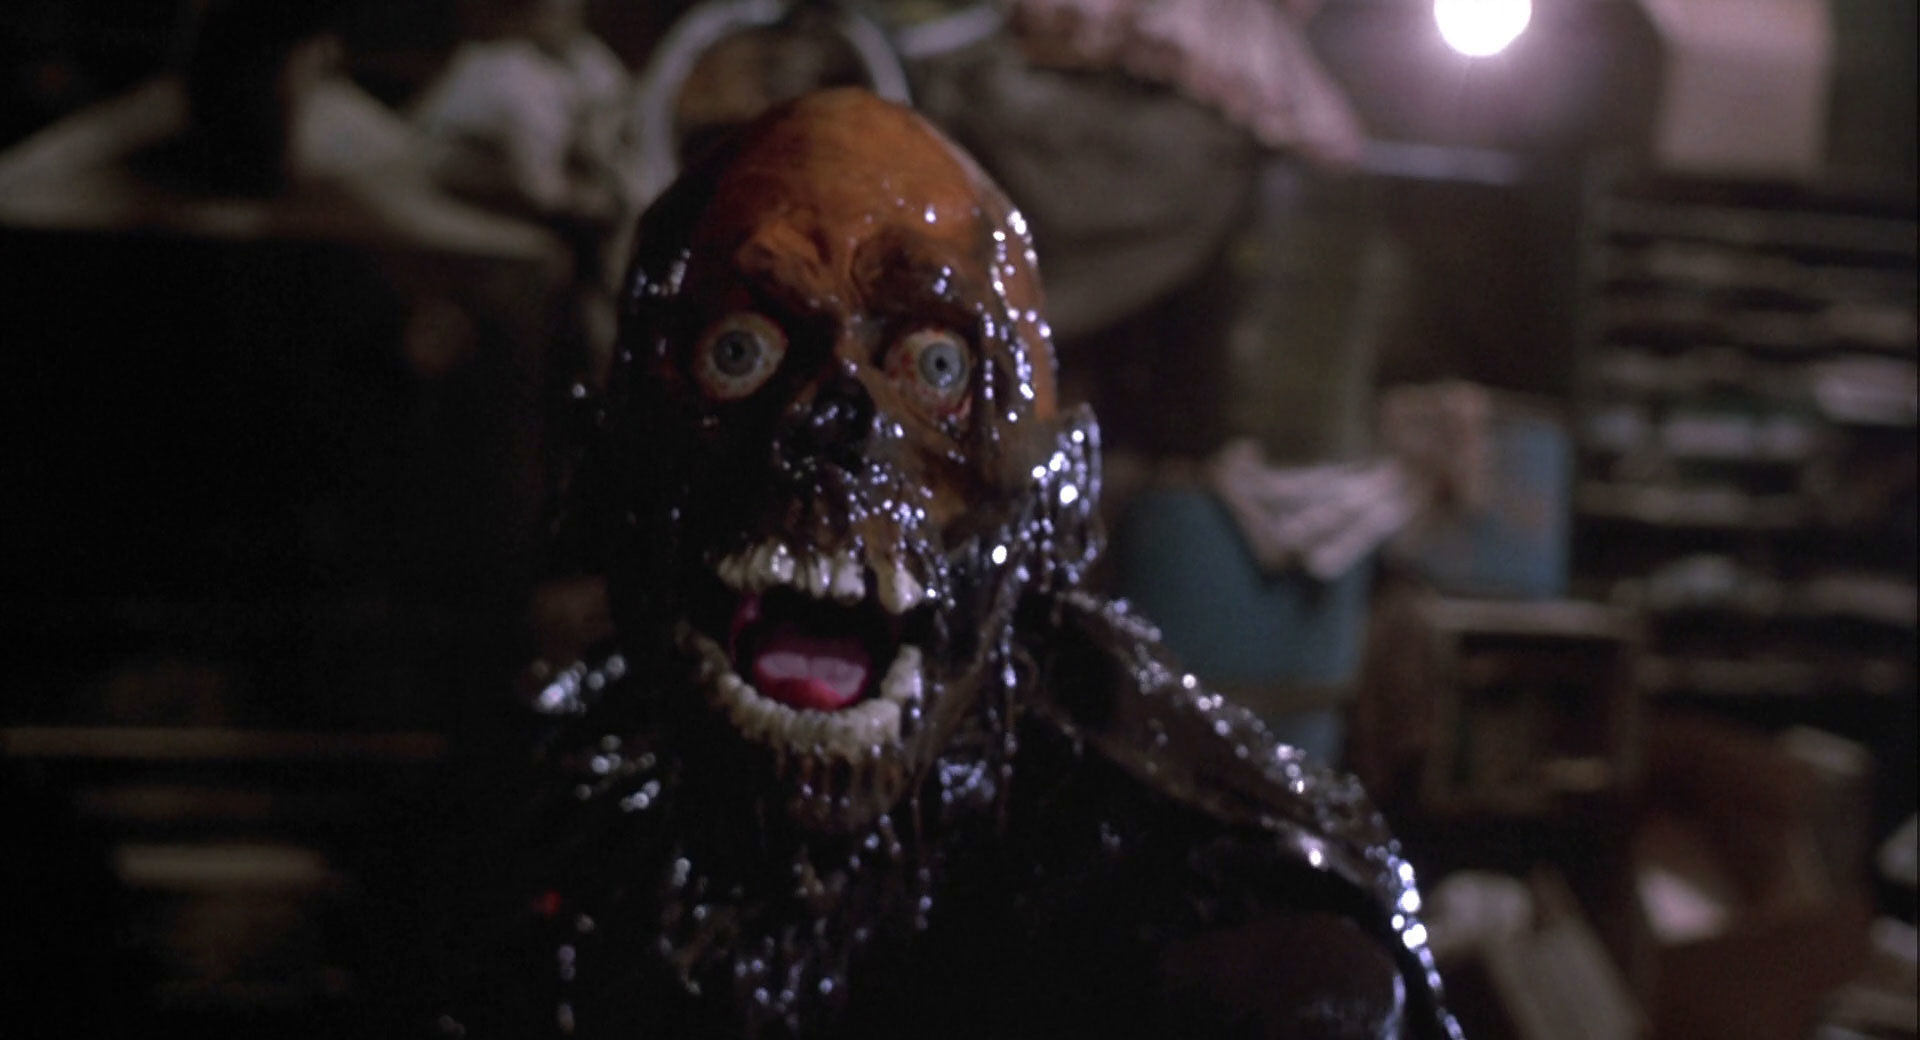 Radioactive Zombie from The Return of the Living Dead